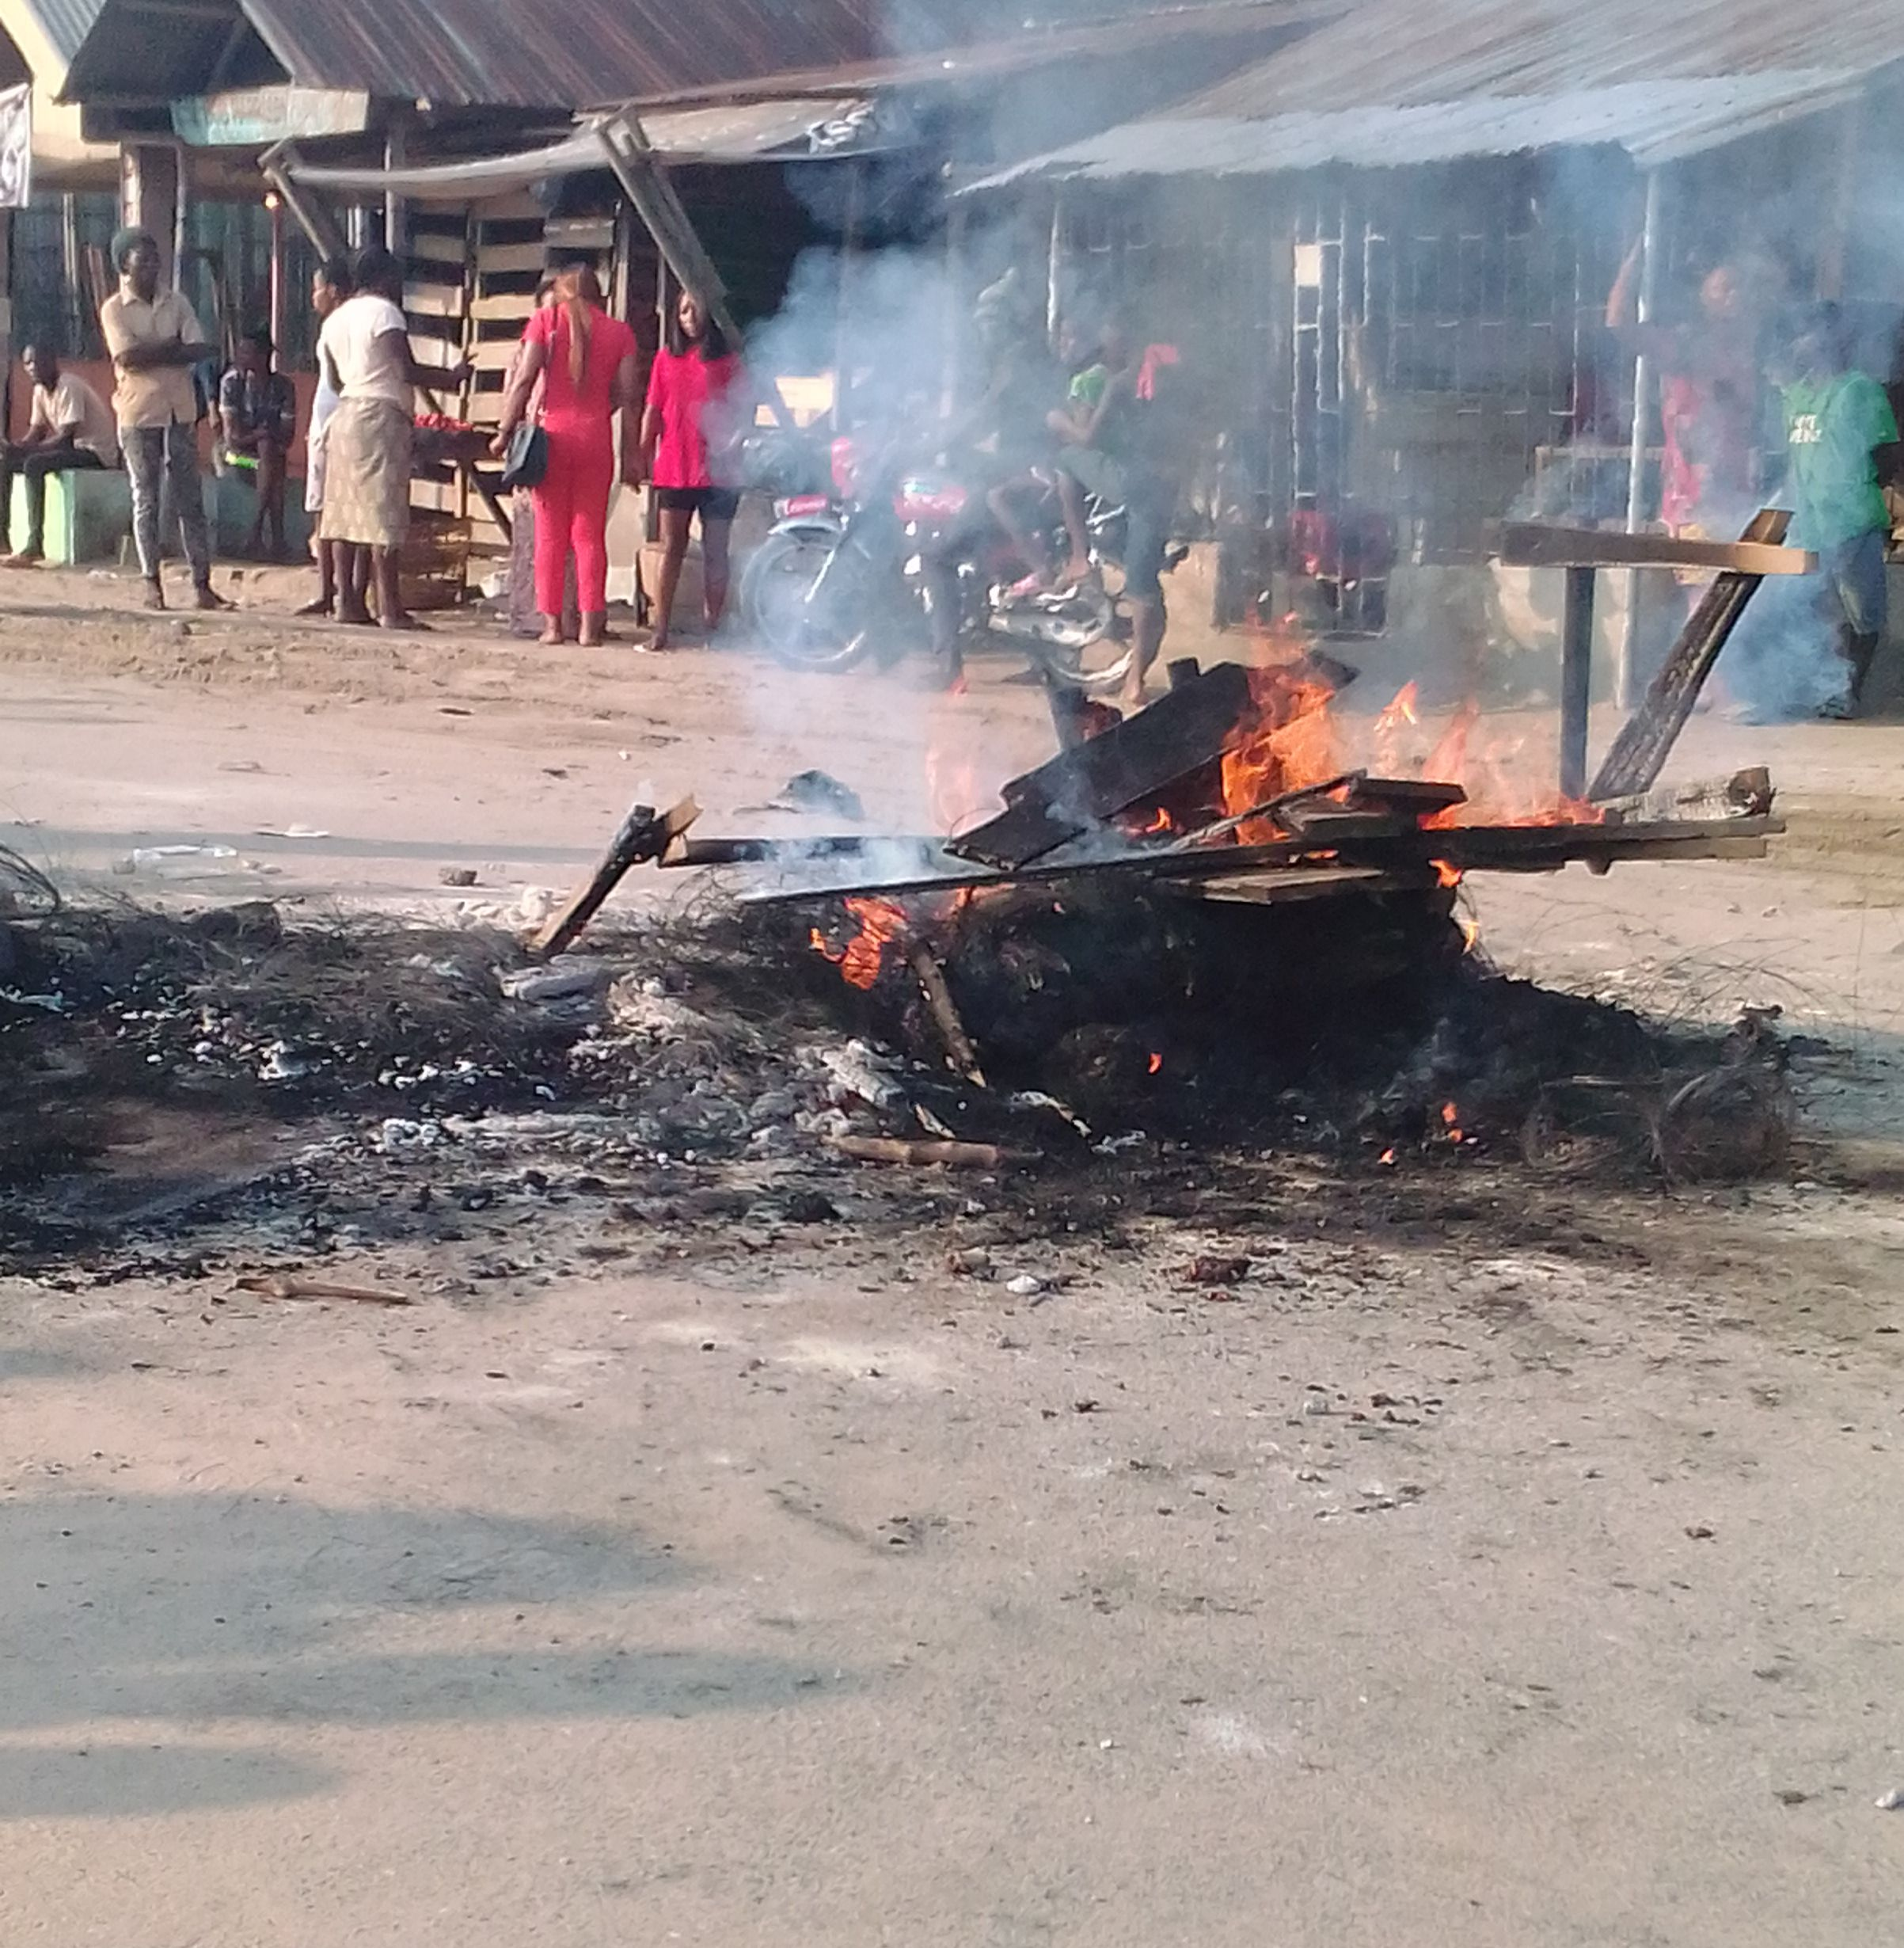 Mob burns two robbery suspects accused of raping a woman